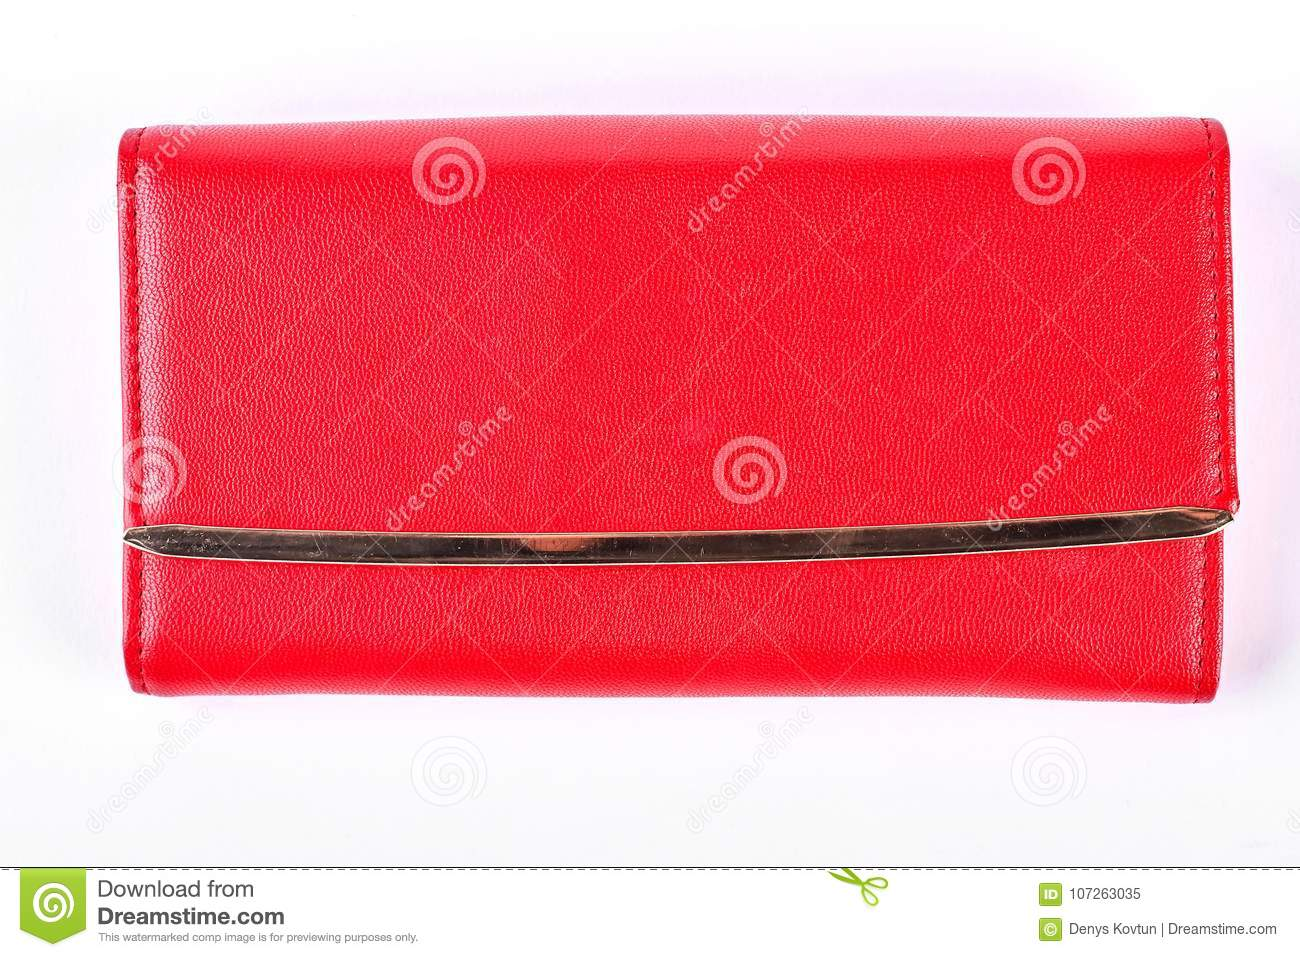 241df89034b41 Woman Red Purse Isolated On White Background. Stock Image - Image of ...